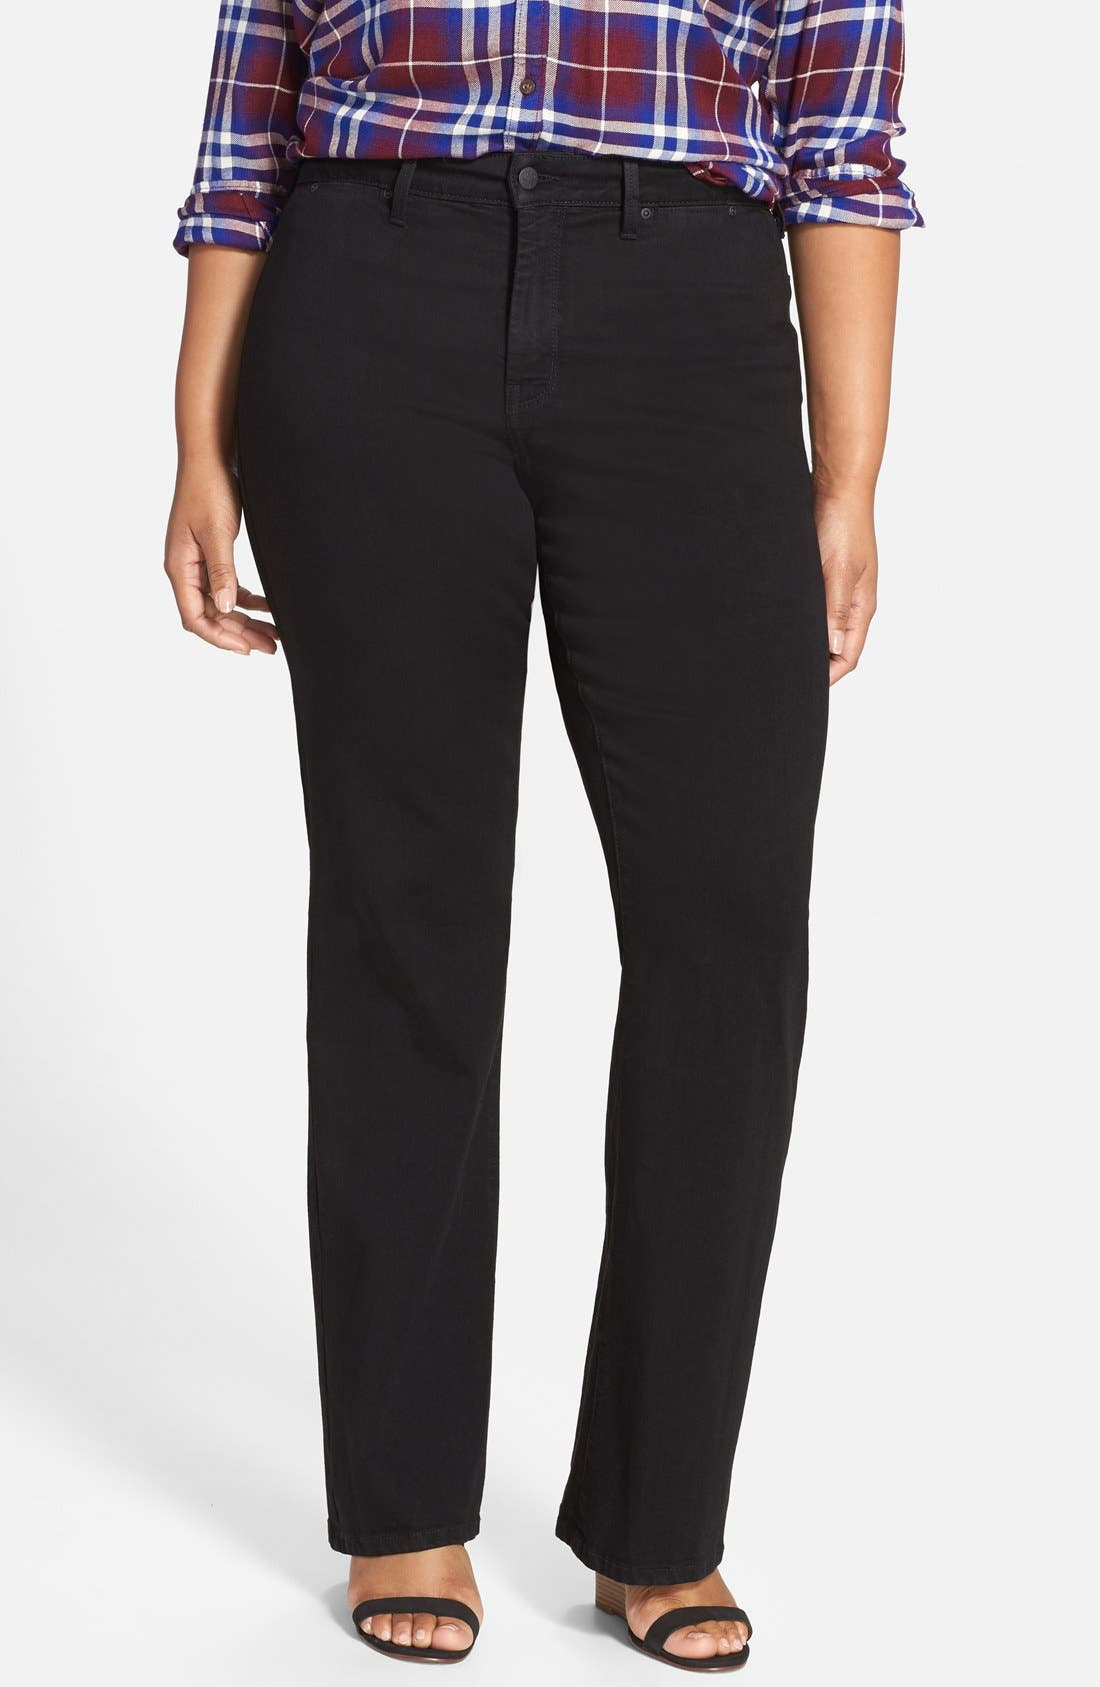 'Isabella' Stretch Trouser Jeans,                             Main thumbnail 1, color,                             001